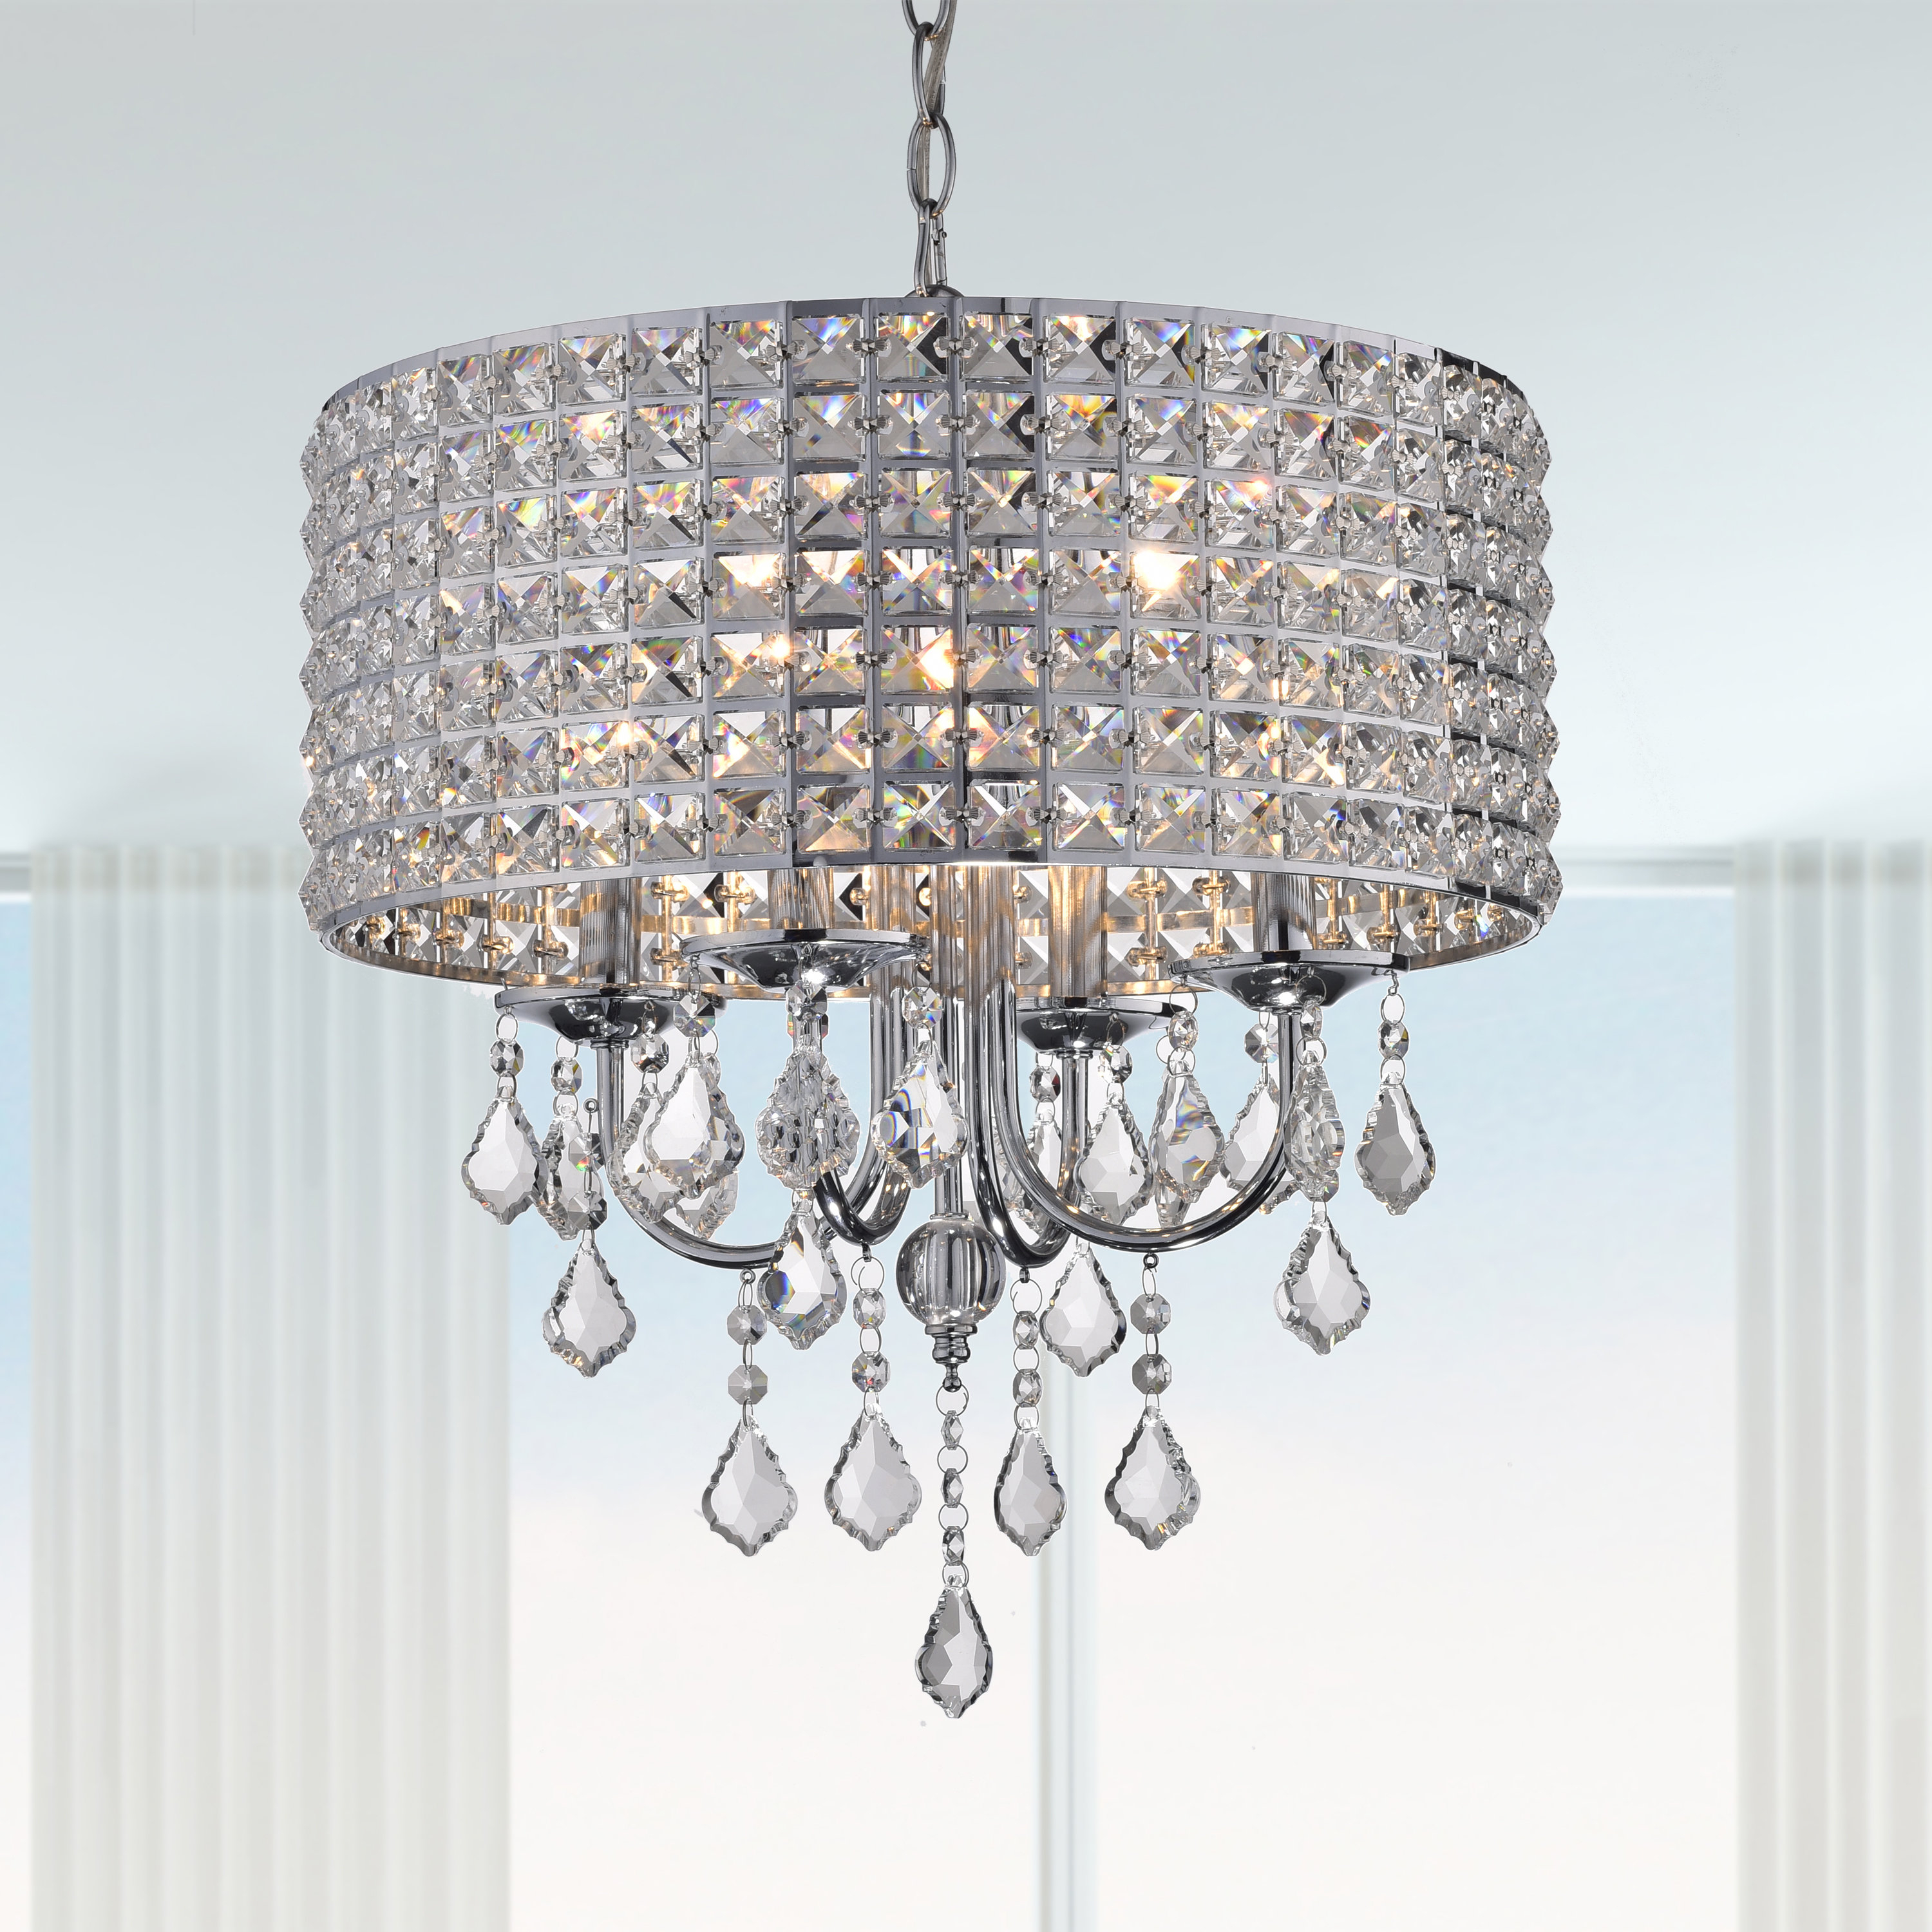 Albano 4 Light Crystal Chandelier For Most Recently Released Jill 4 Light Drum Chandeliers (Gallery 15 of 20)